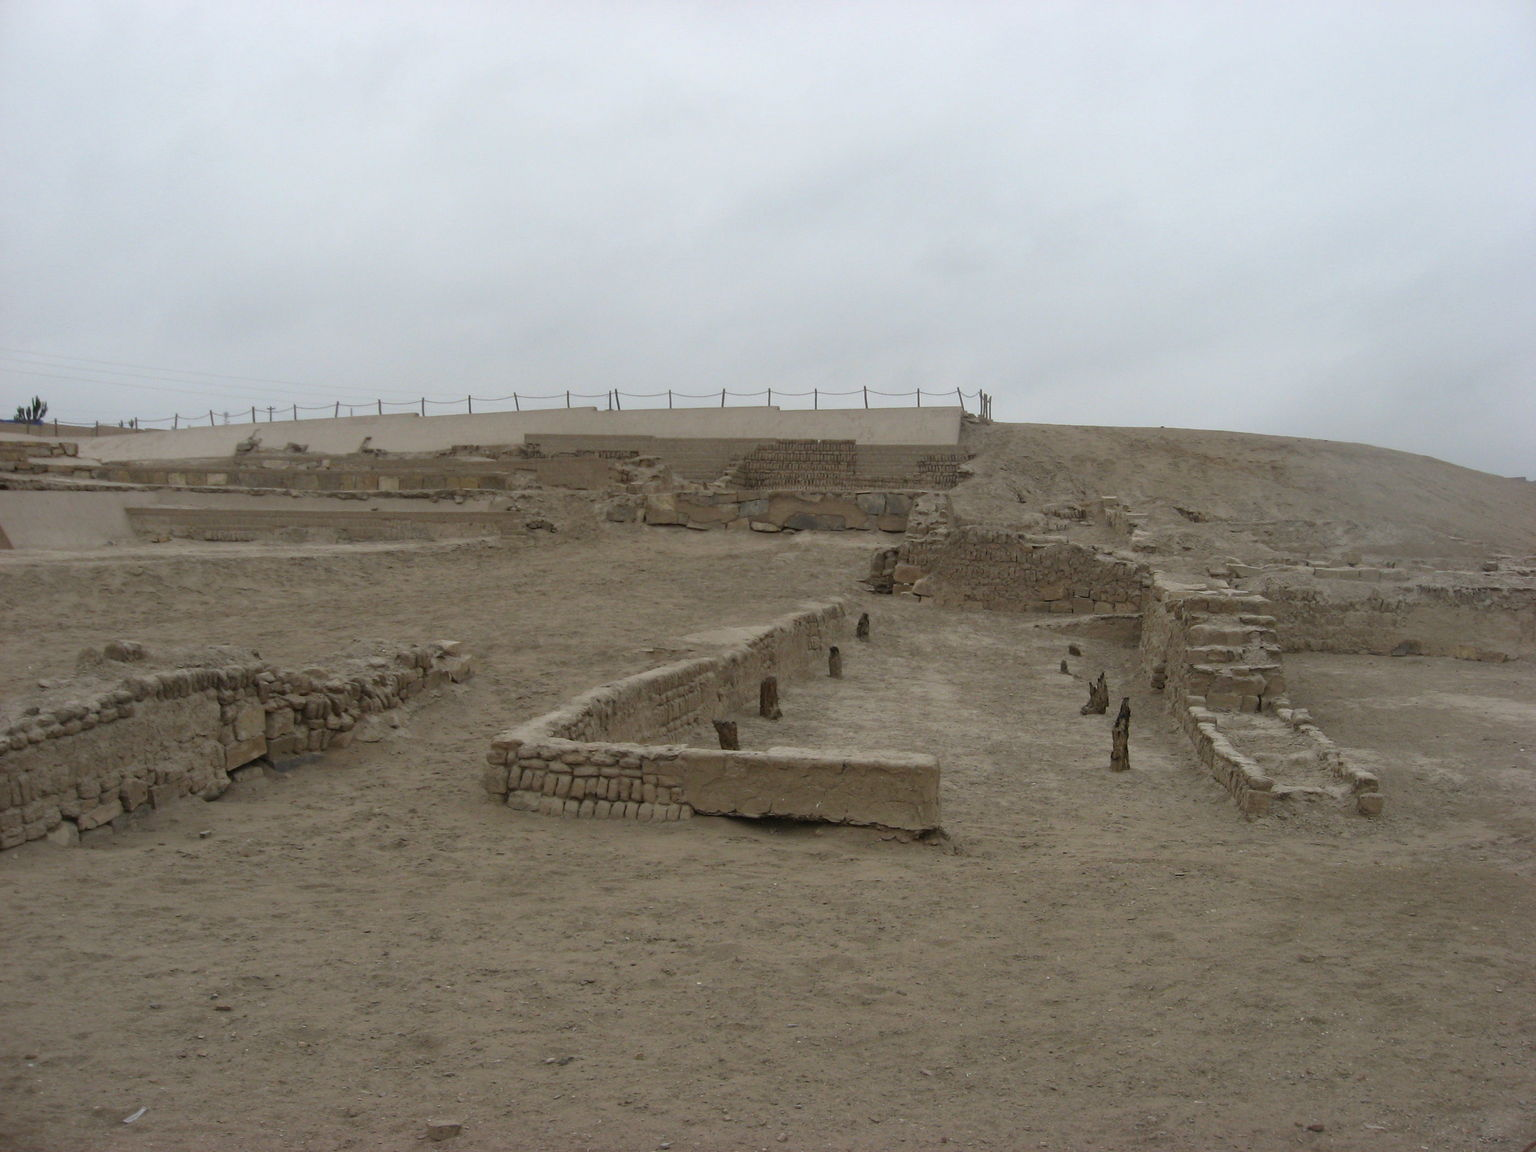 MORE PHOTOS, Temple of Pachacamac Half-Day Tour from Lima